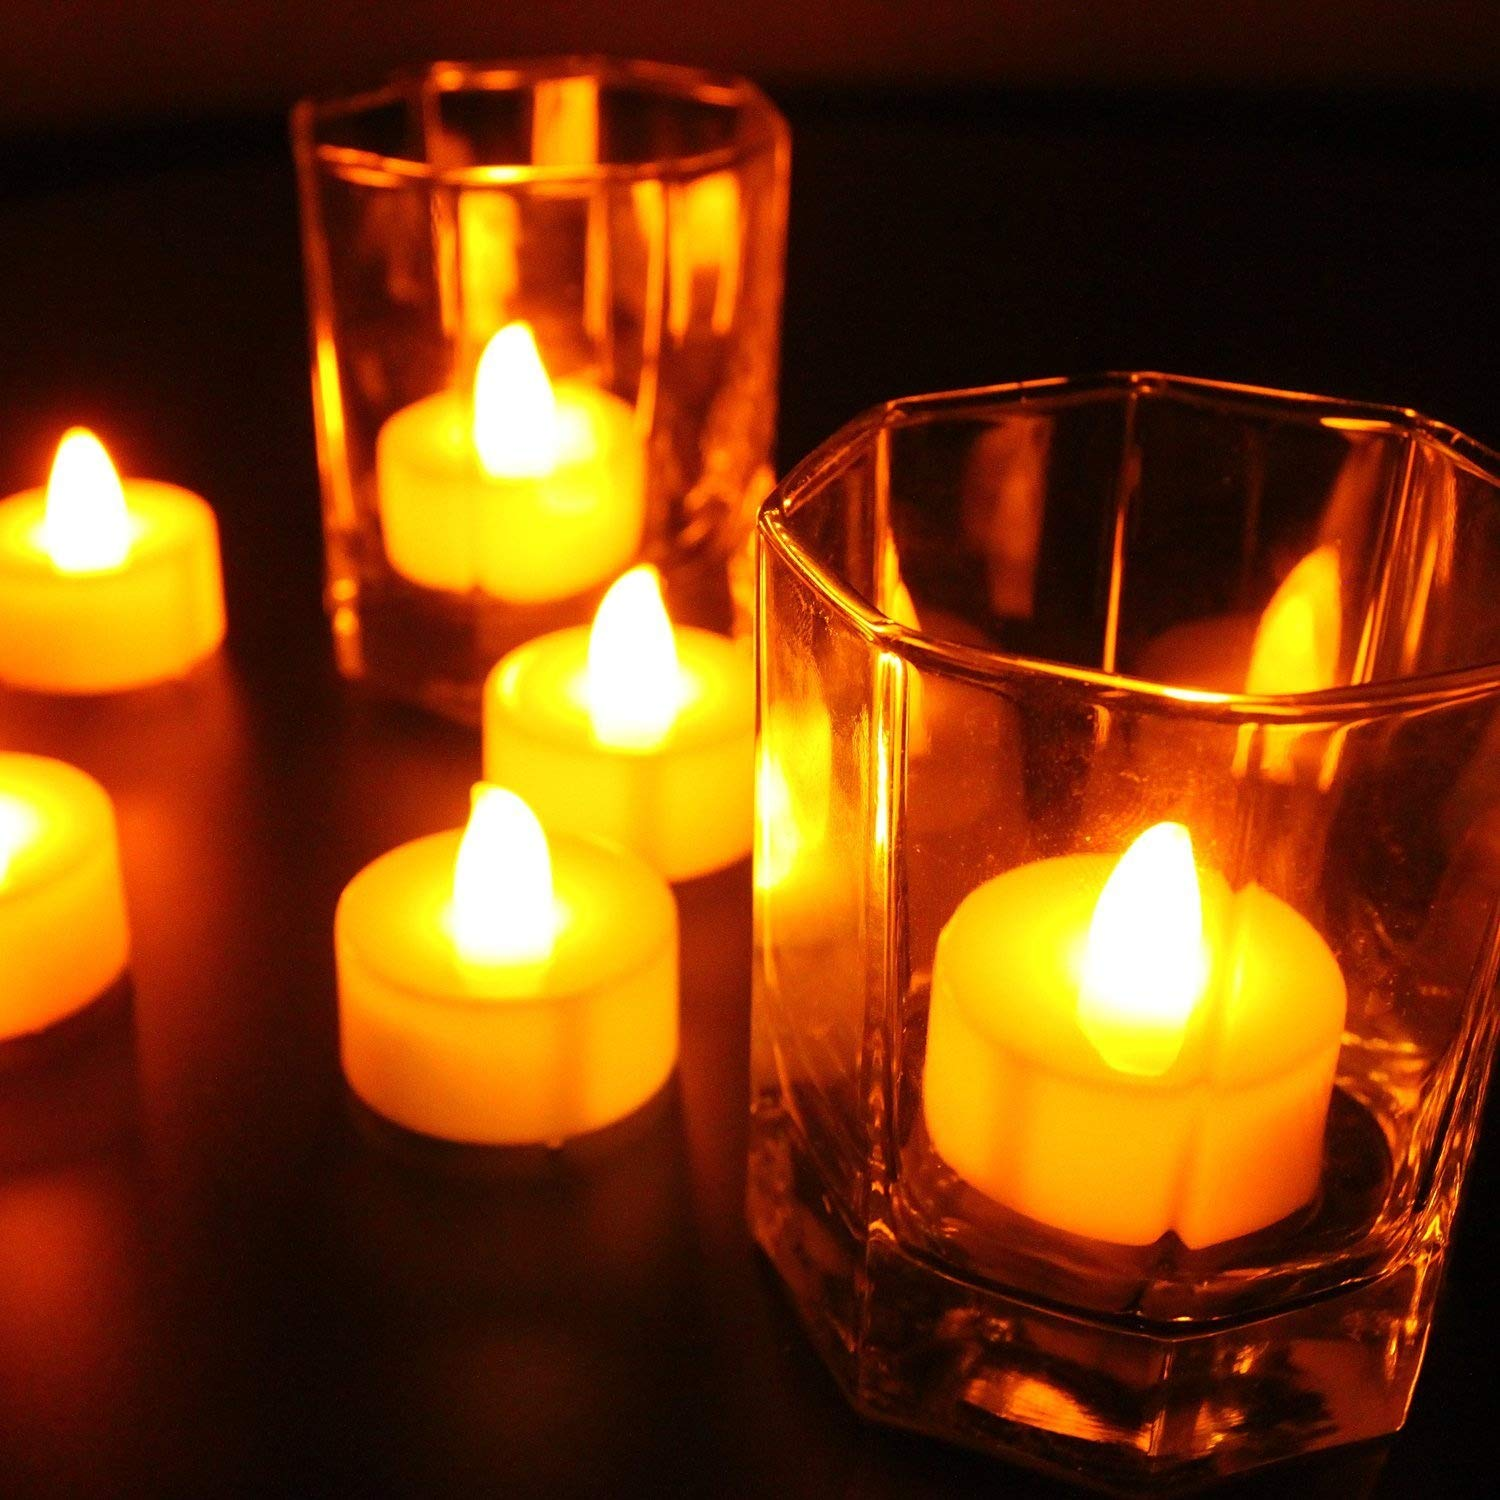 There is such a folk remedy - to put a candle in the church